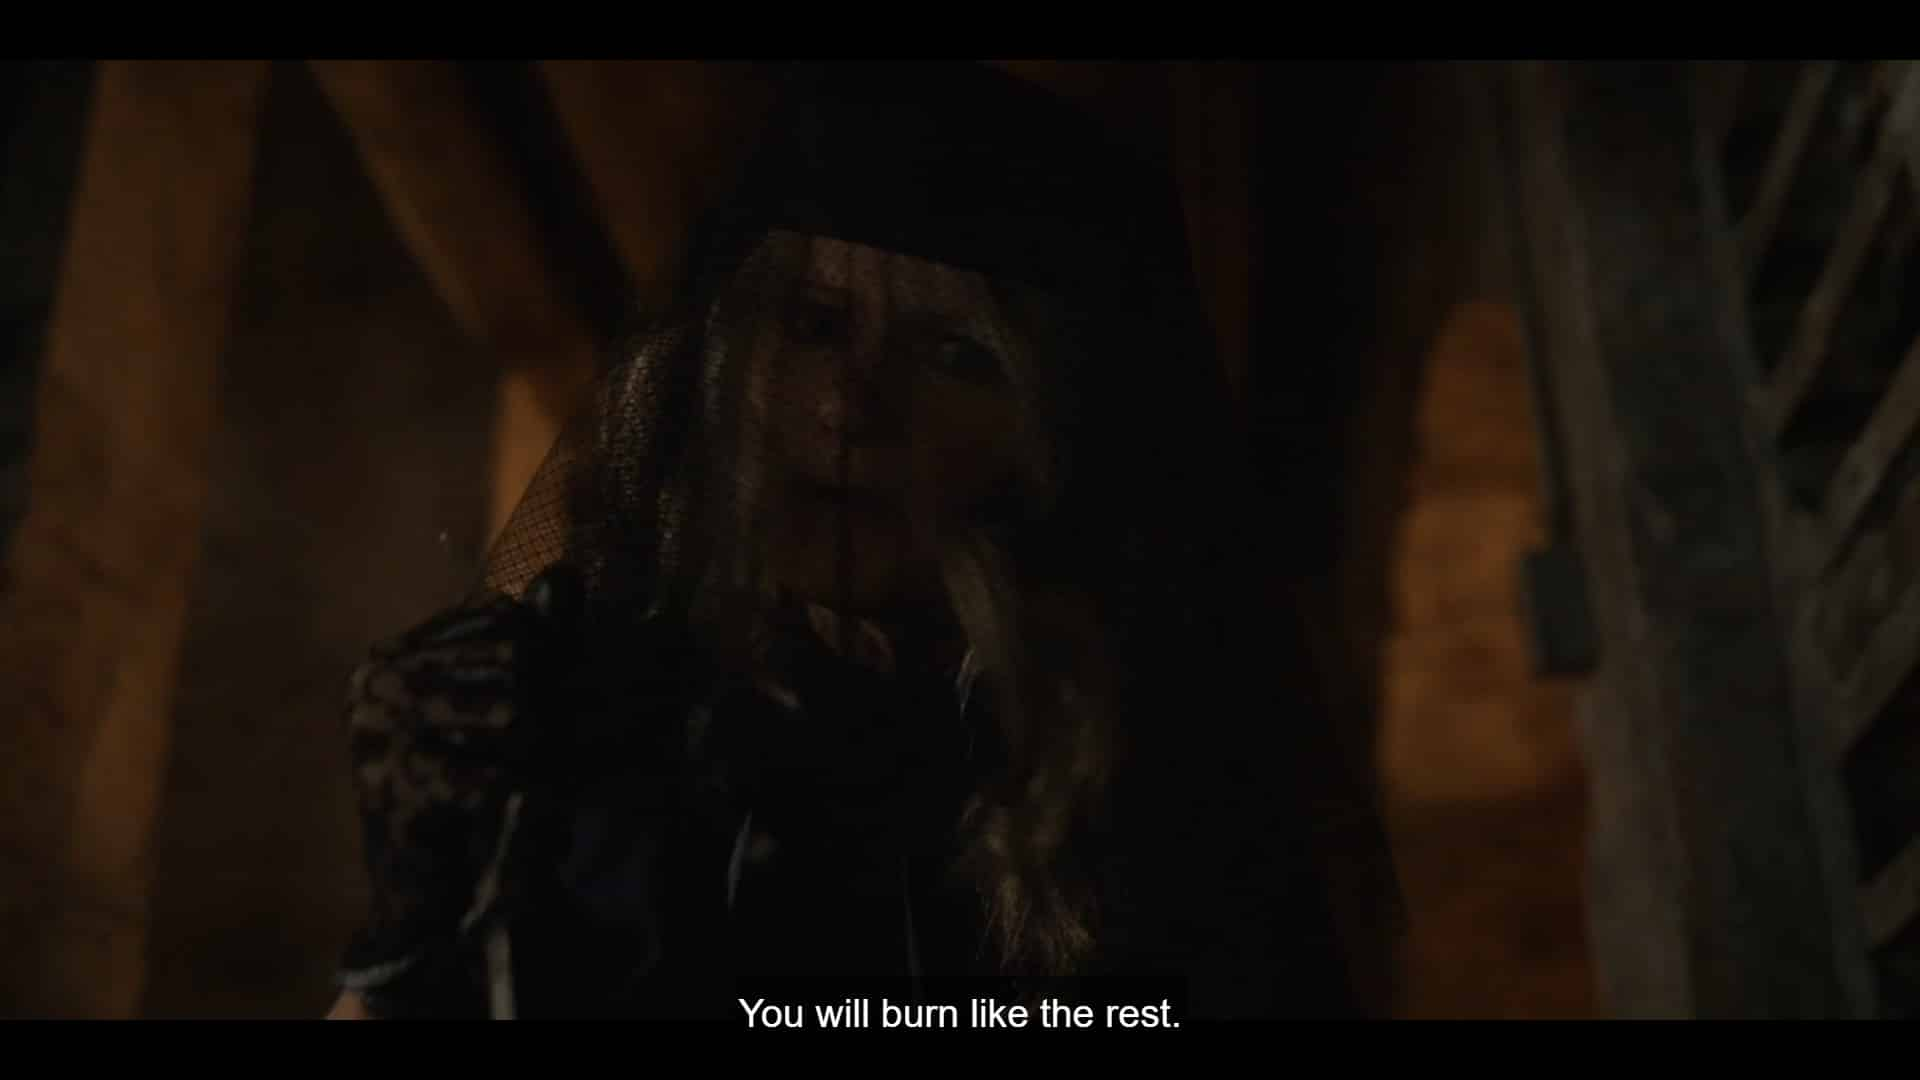 Aunt Josephine noting Leanne will burn like all the rest